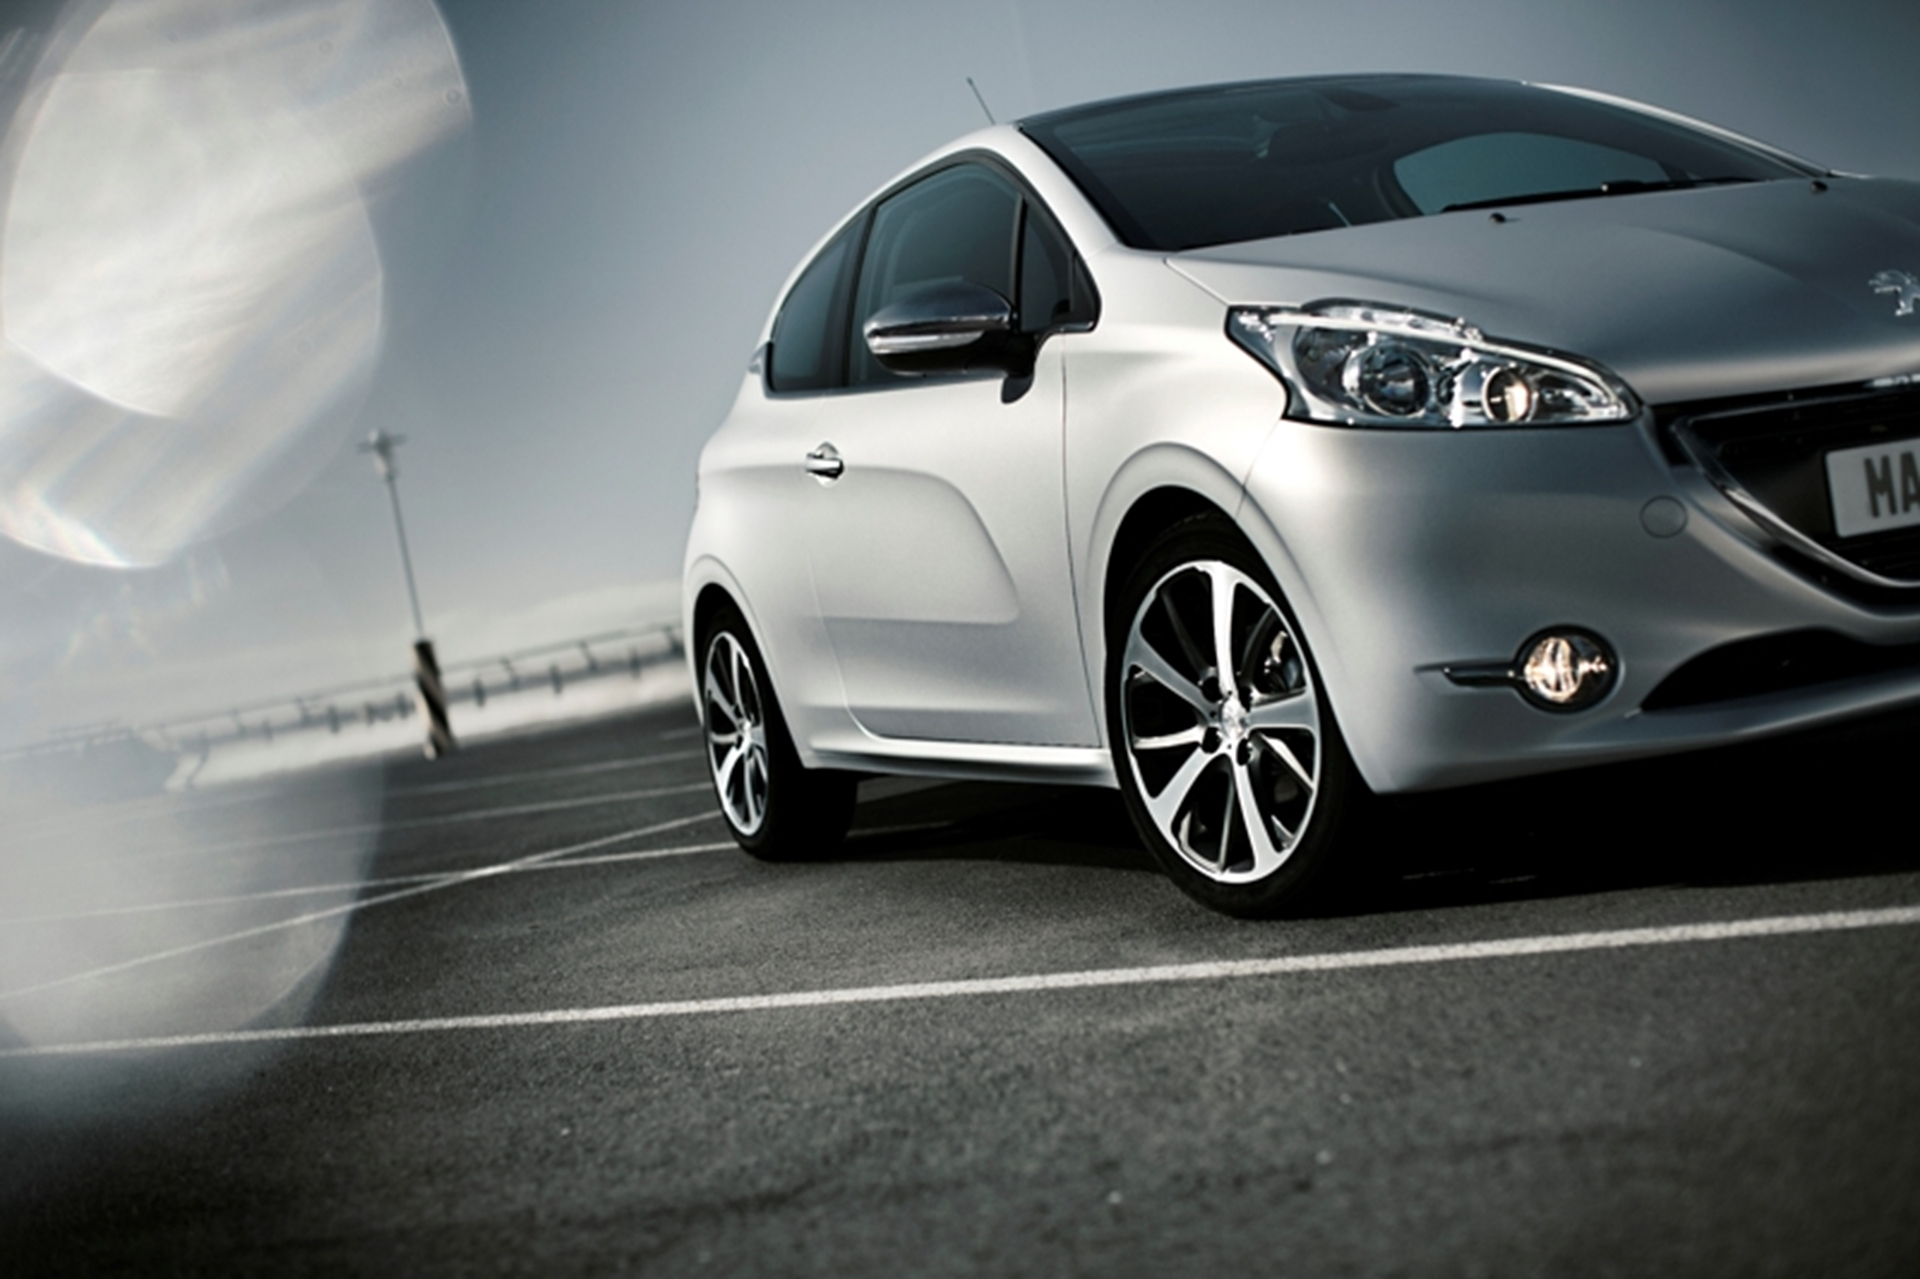 Peugeot-208 Silver